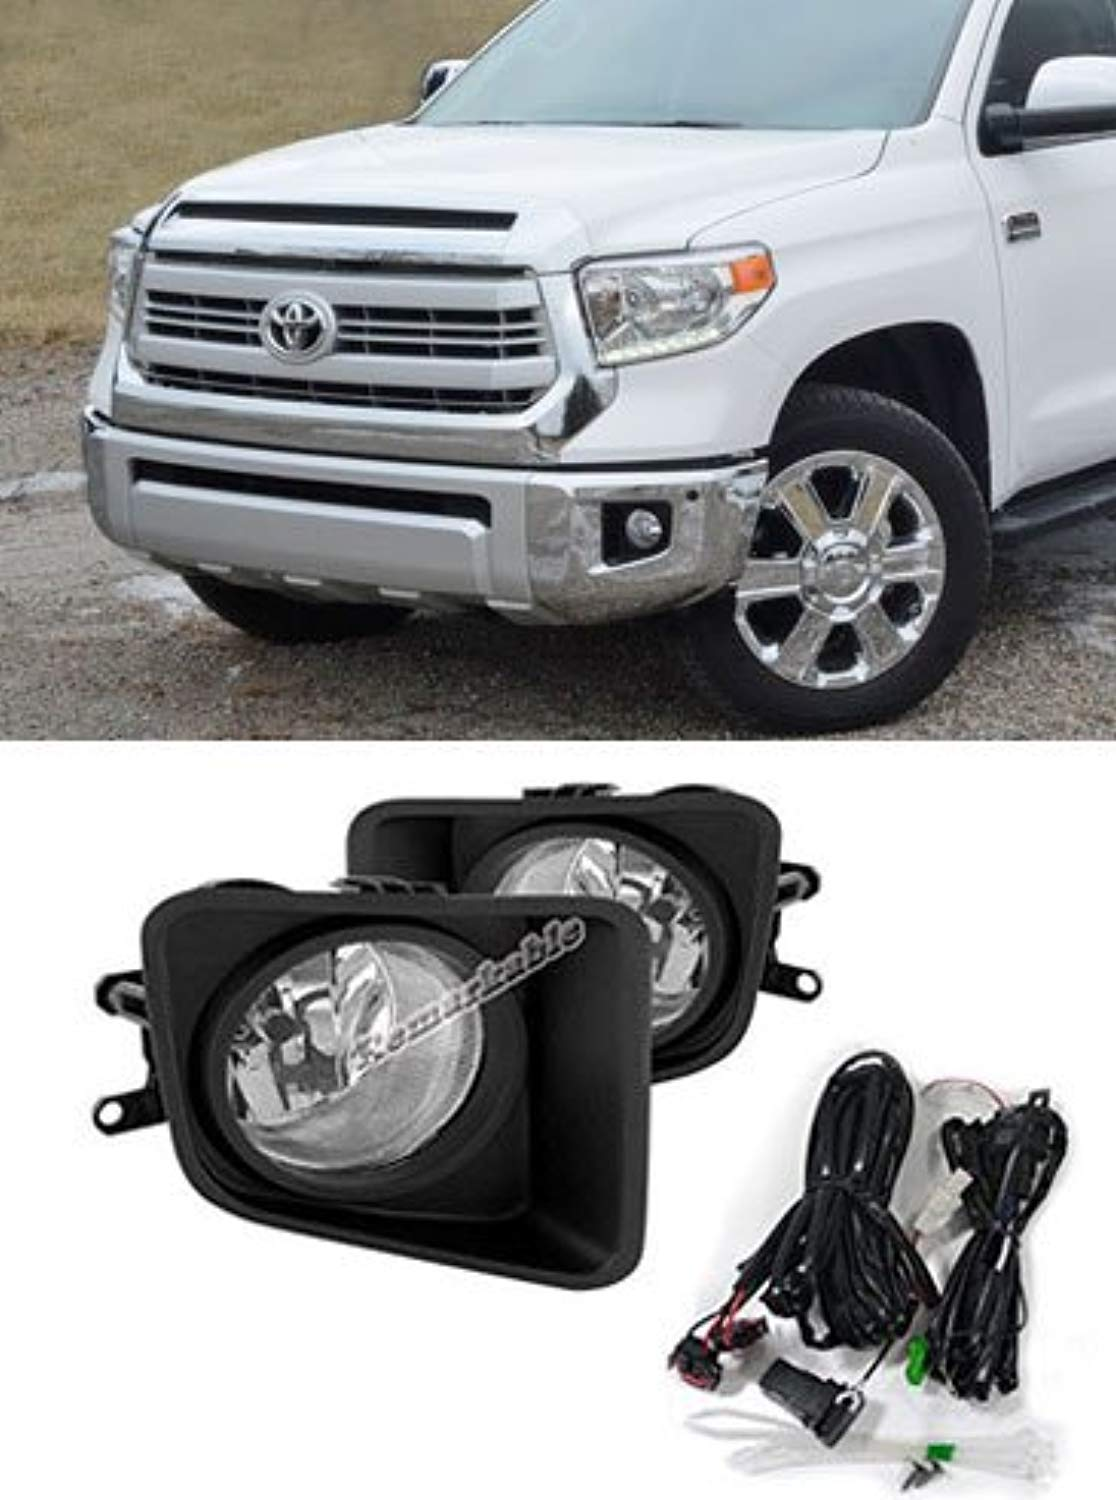 RP Remarkable Power FL7008 Fit for 2014-2019 Tundra Clear Fog Light Kit